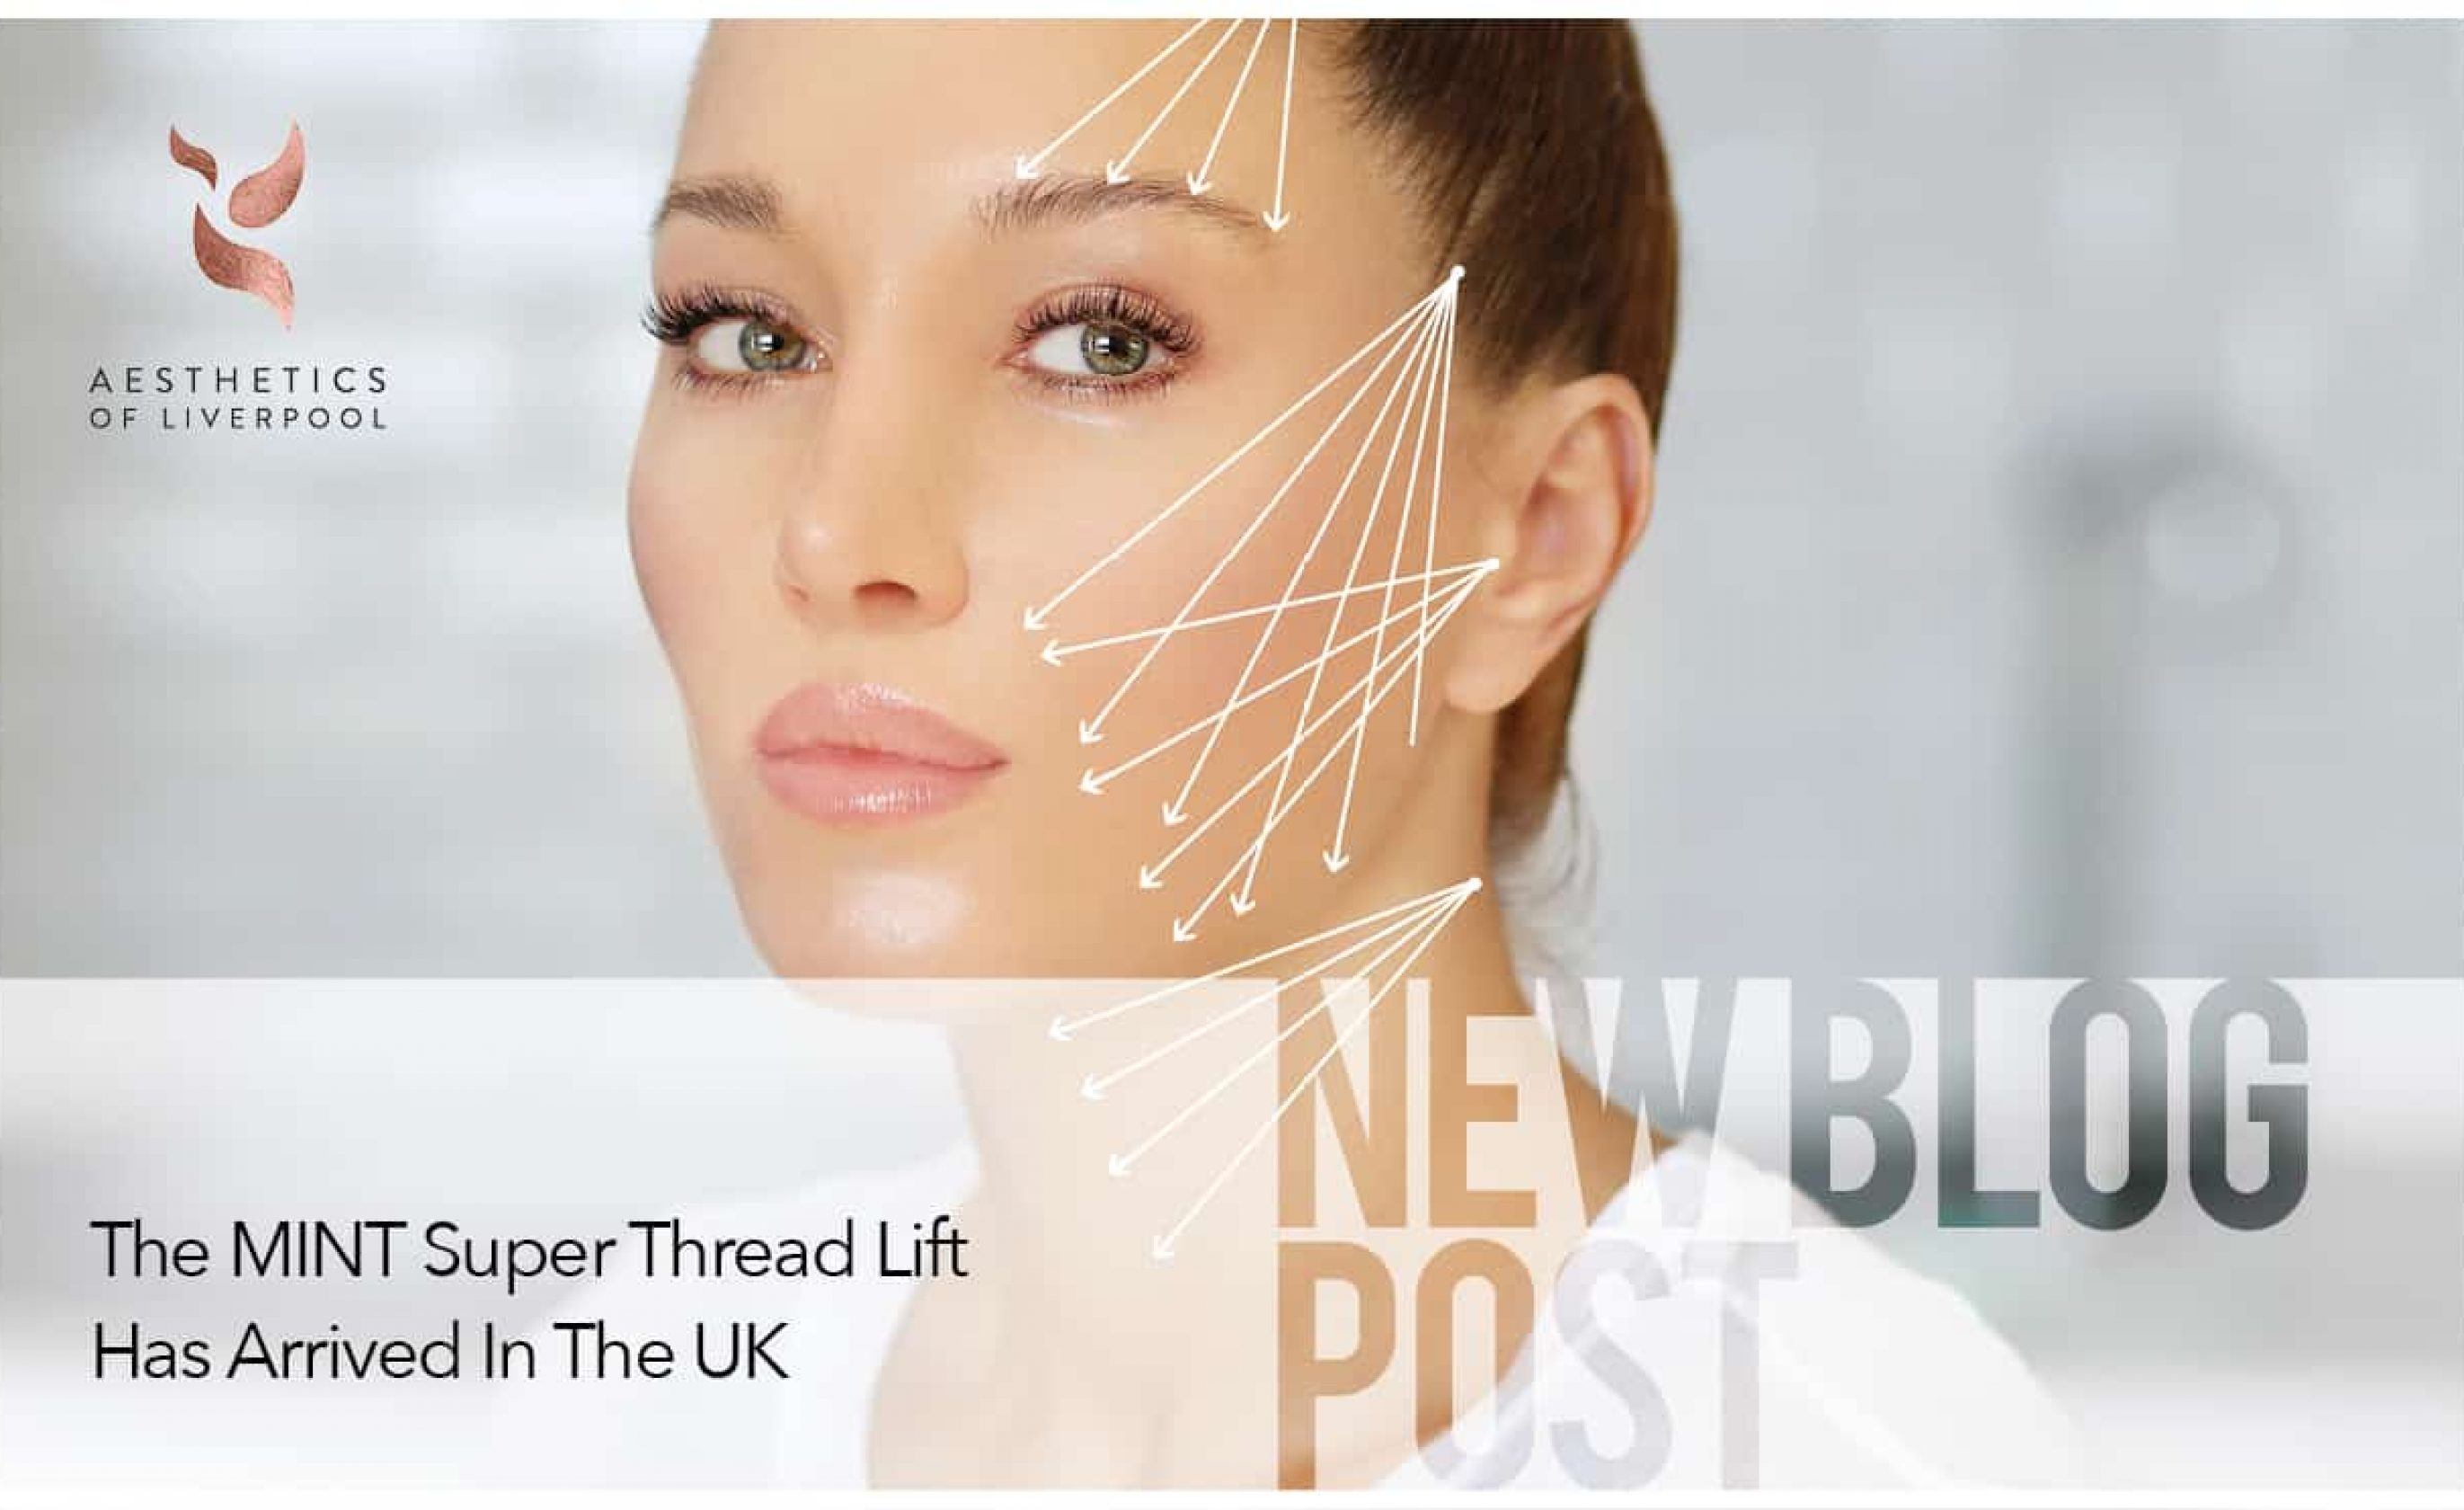 The MINT Super Thread Lift Has Arrived In The UK